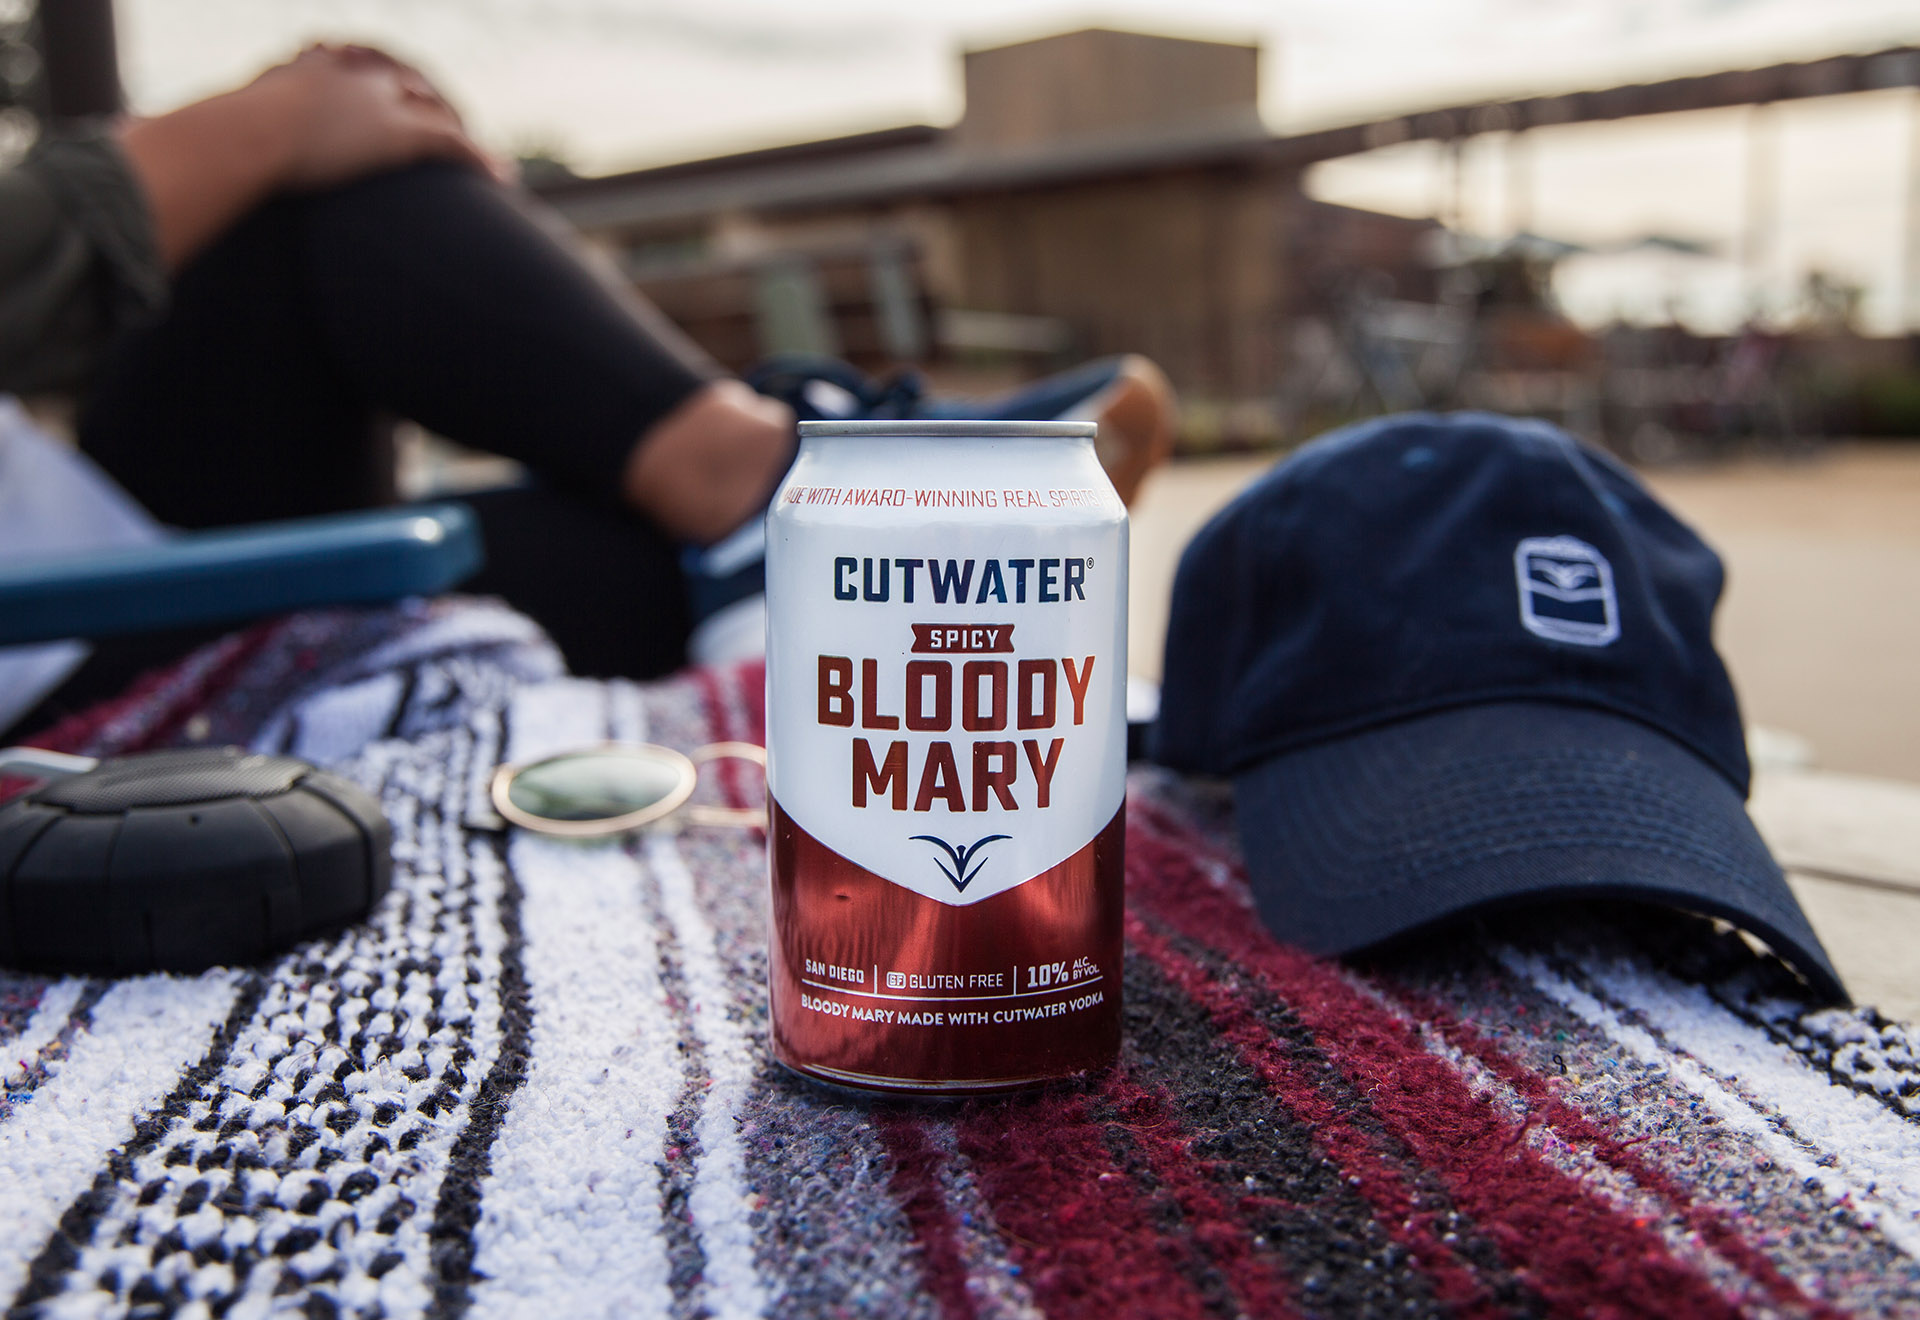 Cutwater Spicy Bloody Mary at a picnic